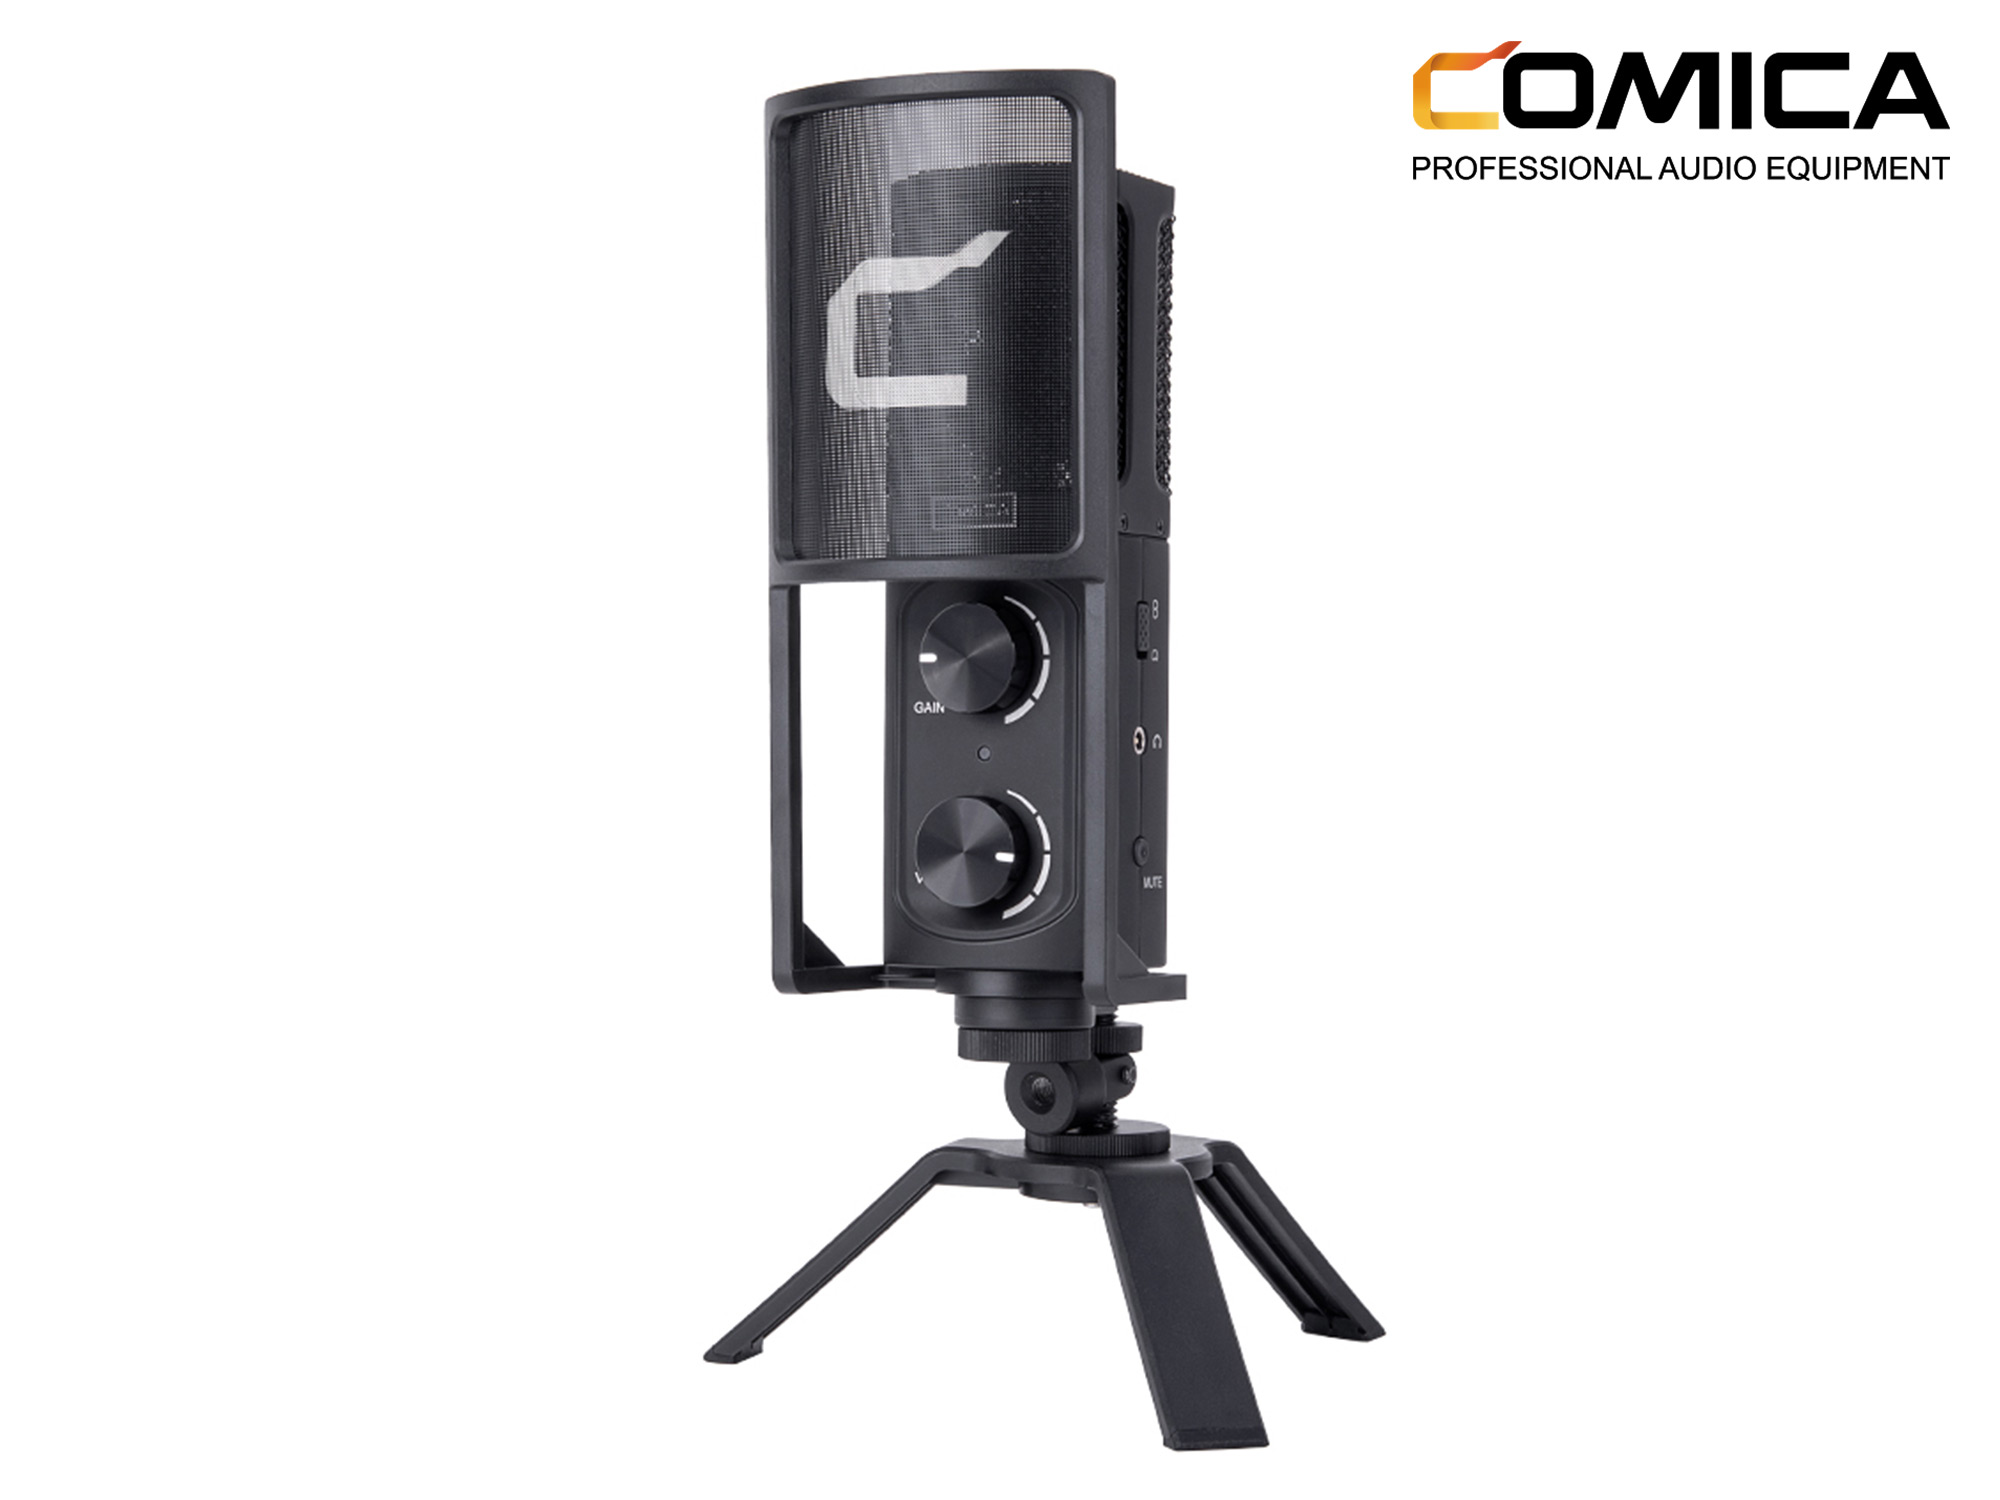 Comica STM-USB USB Mic for Apple, Windows, Android and iOS